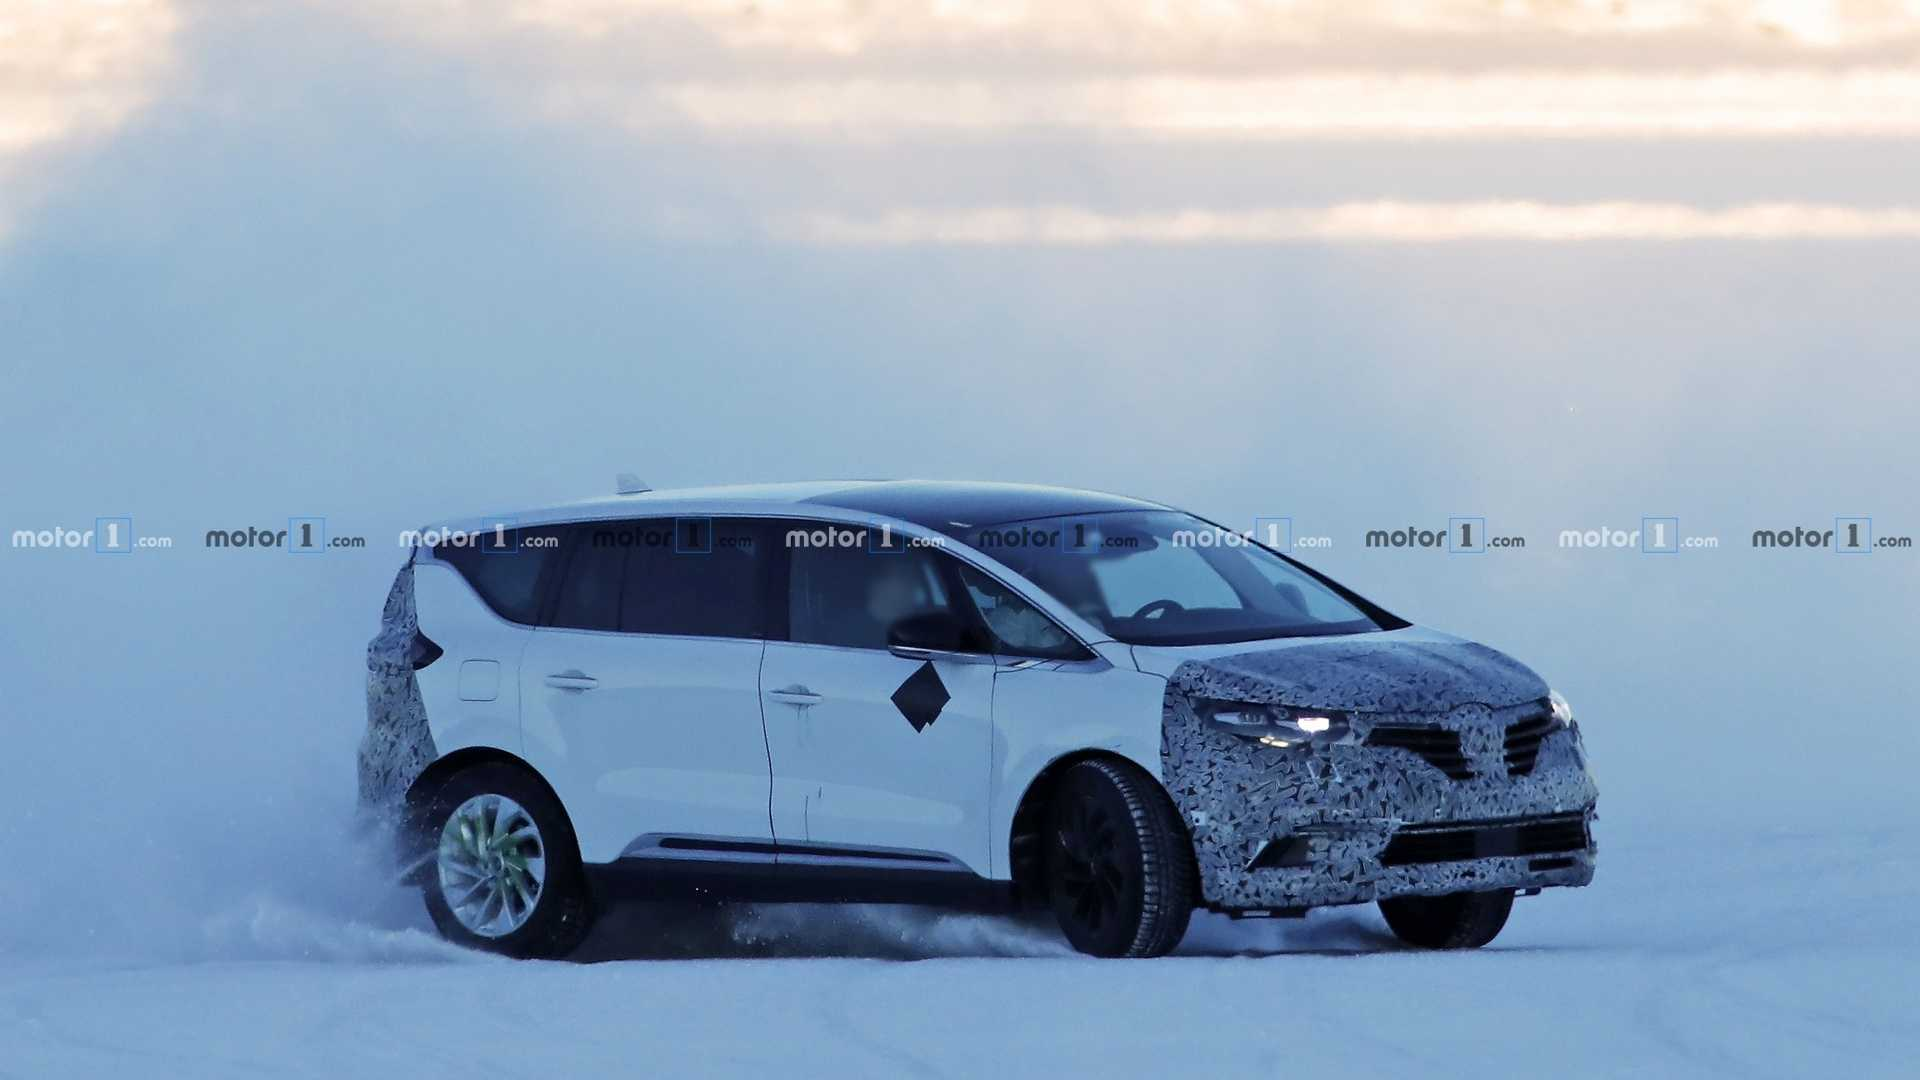 24 All New Renault Espace 2019 Picture by Renault Espace 2019